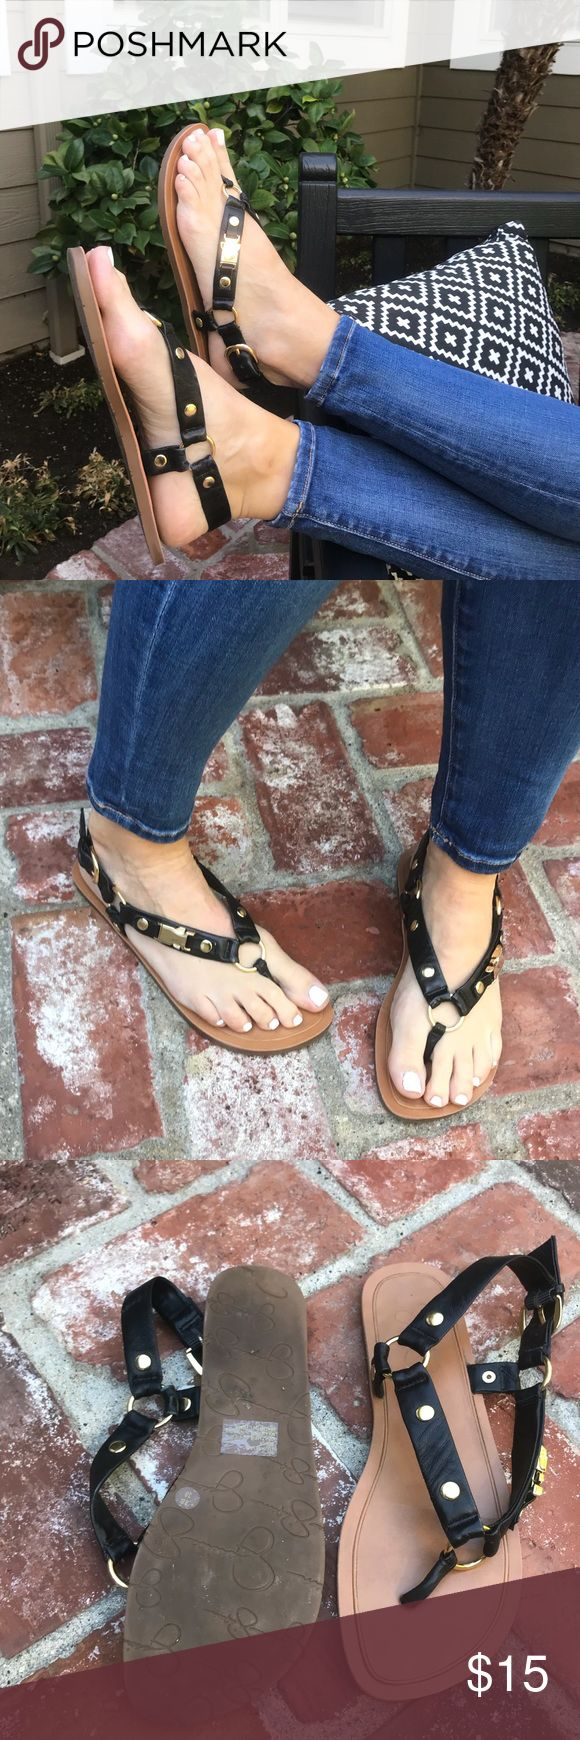 Jessica Simpson Sandals Flat sandal w/ tan sole & black t-strap w/ gold grommets. Shoes are very comfortable to walk in & wear; hardly worn in good condition. Top of sole is very clean. Jessica Simpson Shoes Sandals